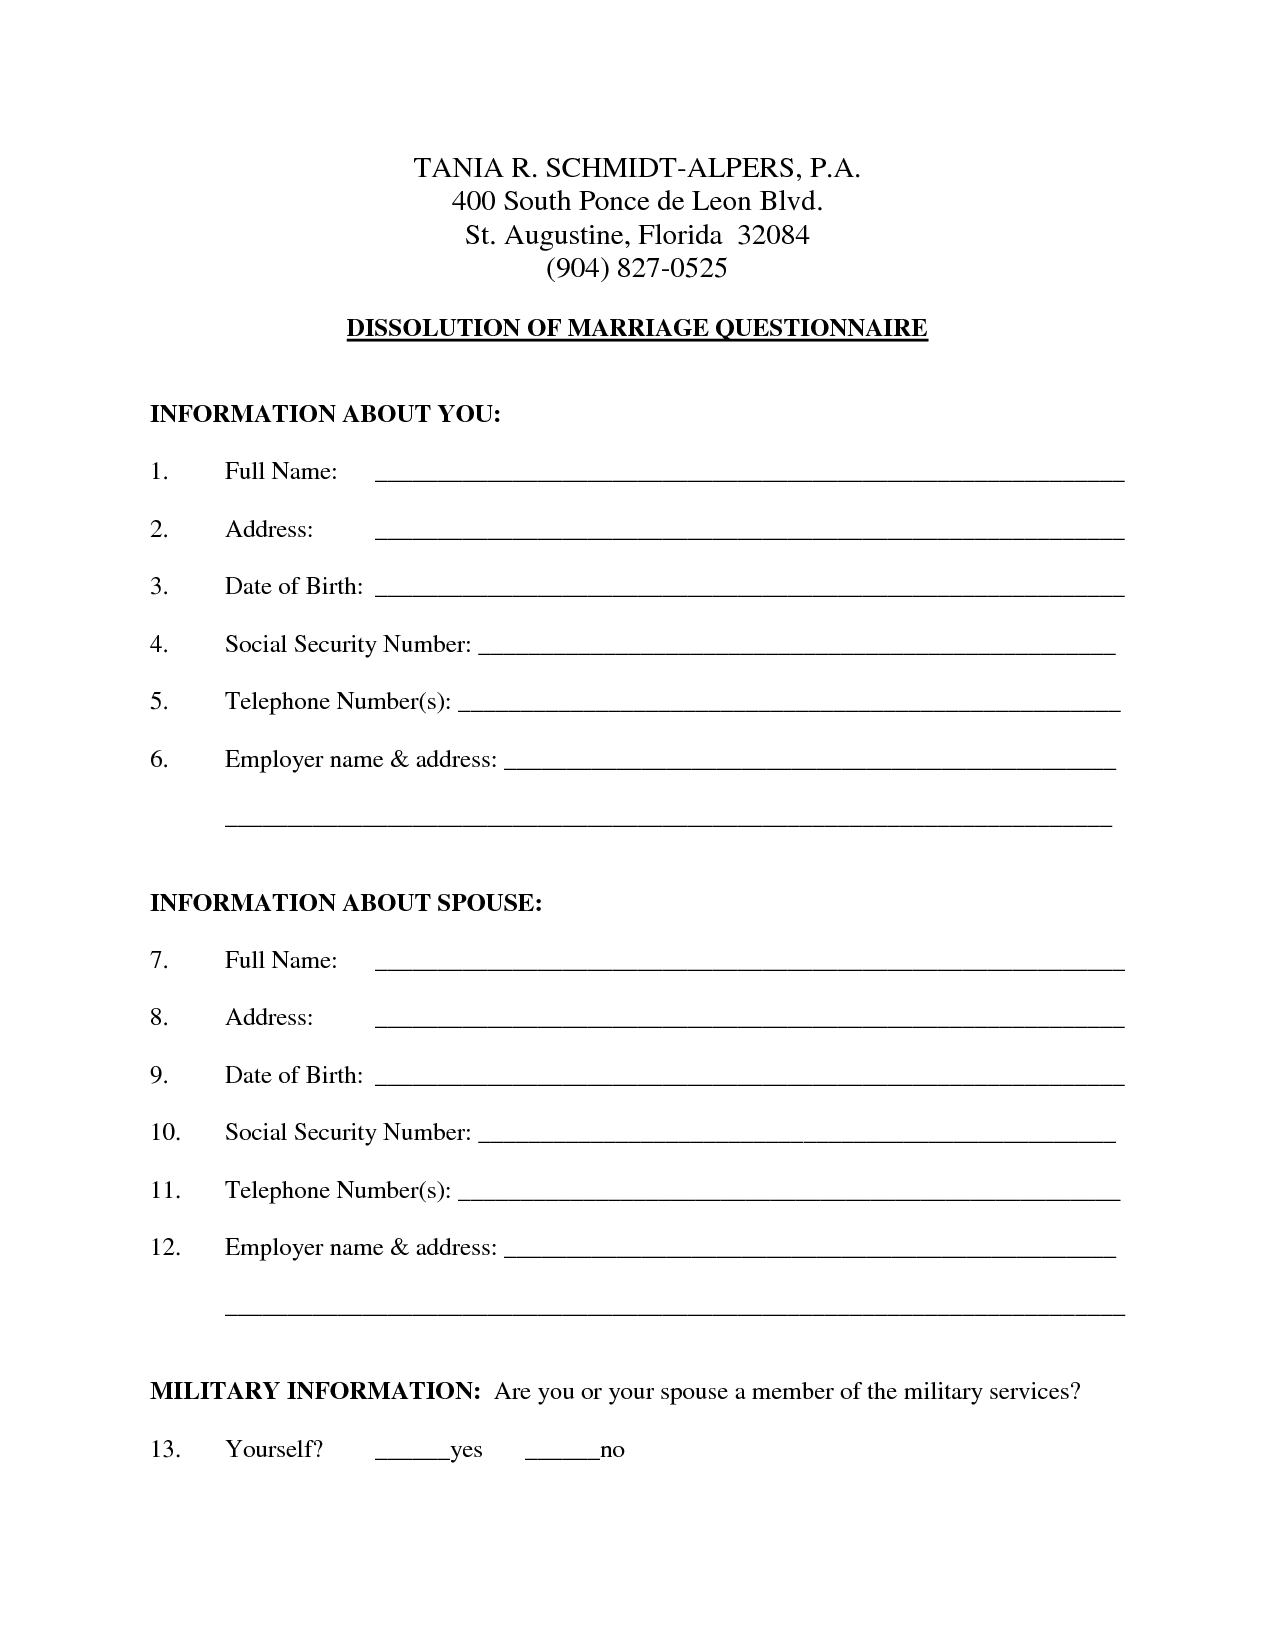 Free Printable Nj Divorce Forms That Are Refreshing